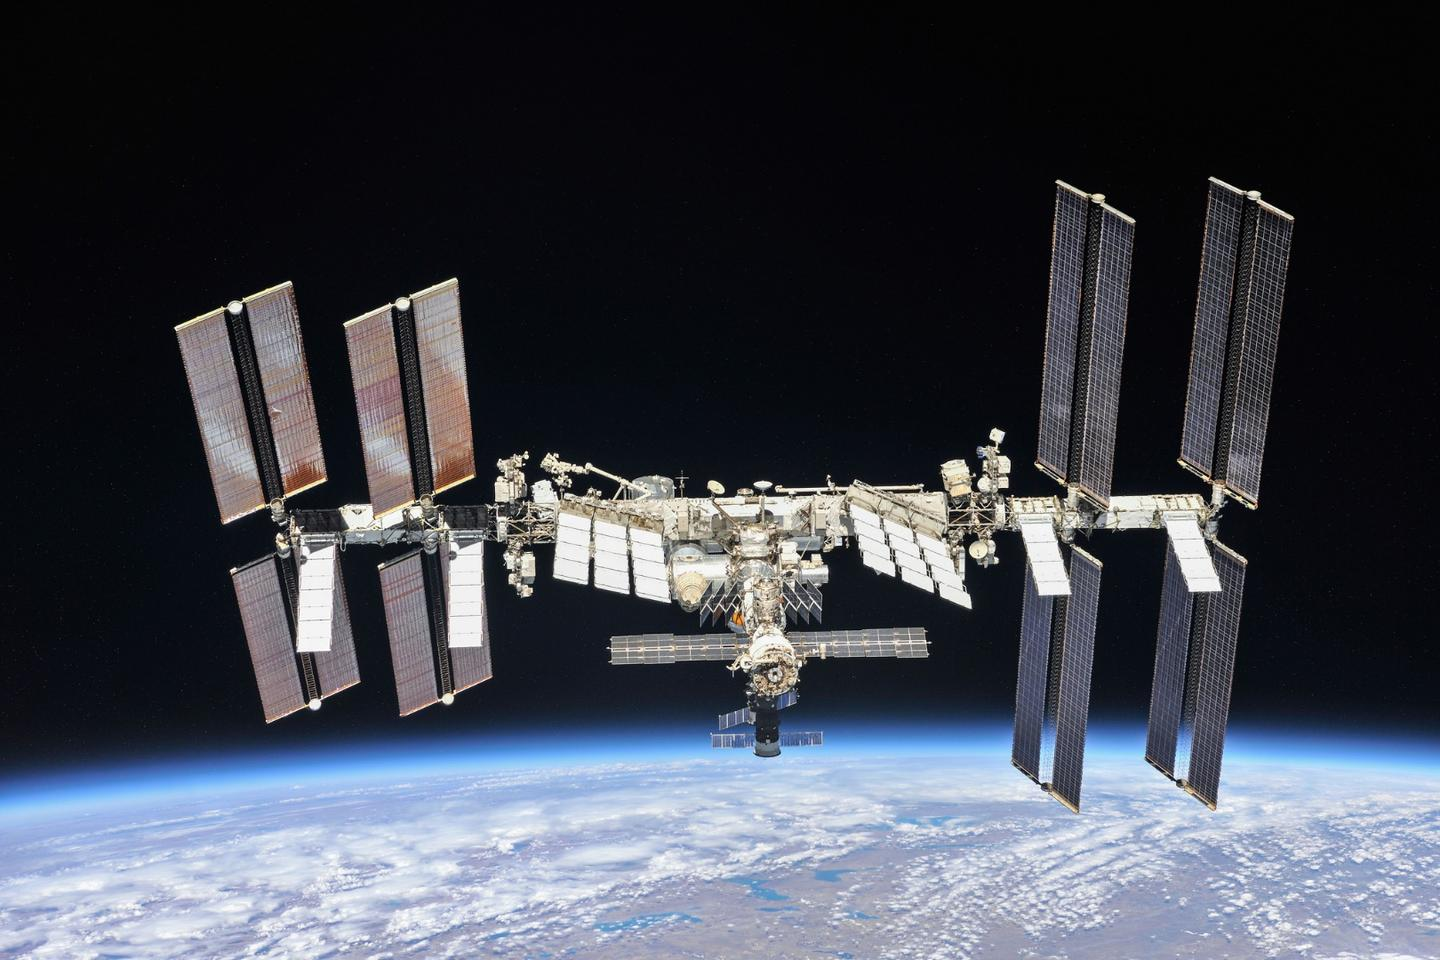 Today the ISS celebrates 20 years in orbit